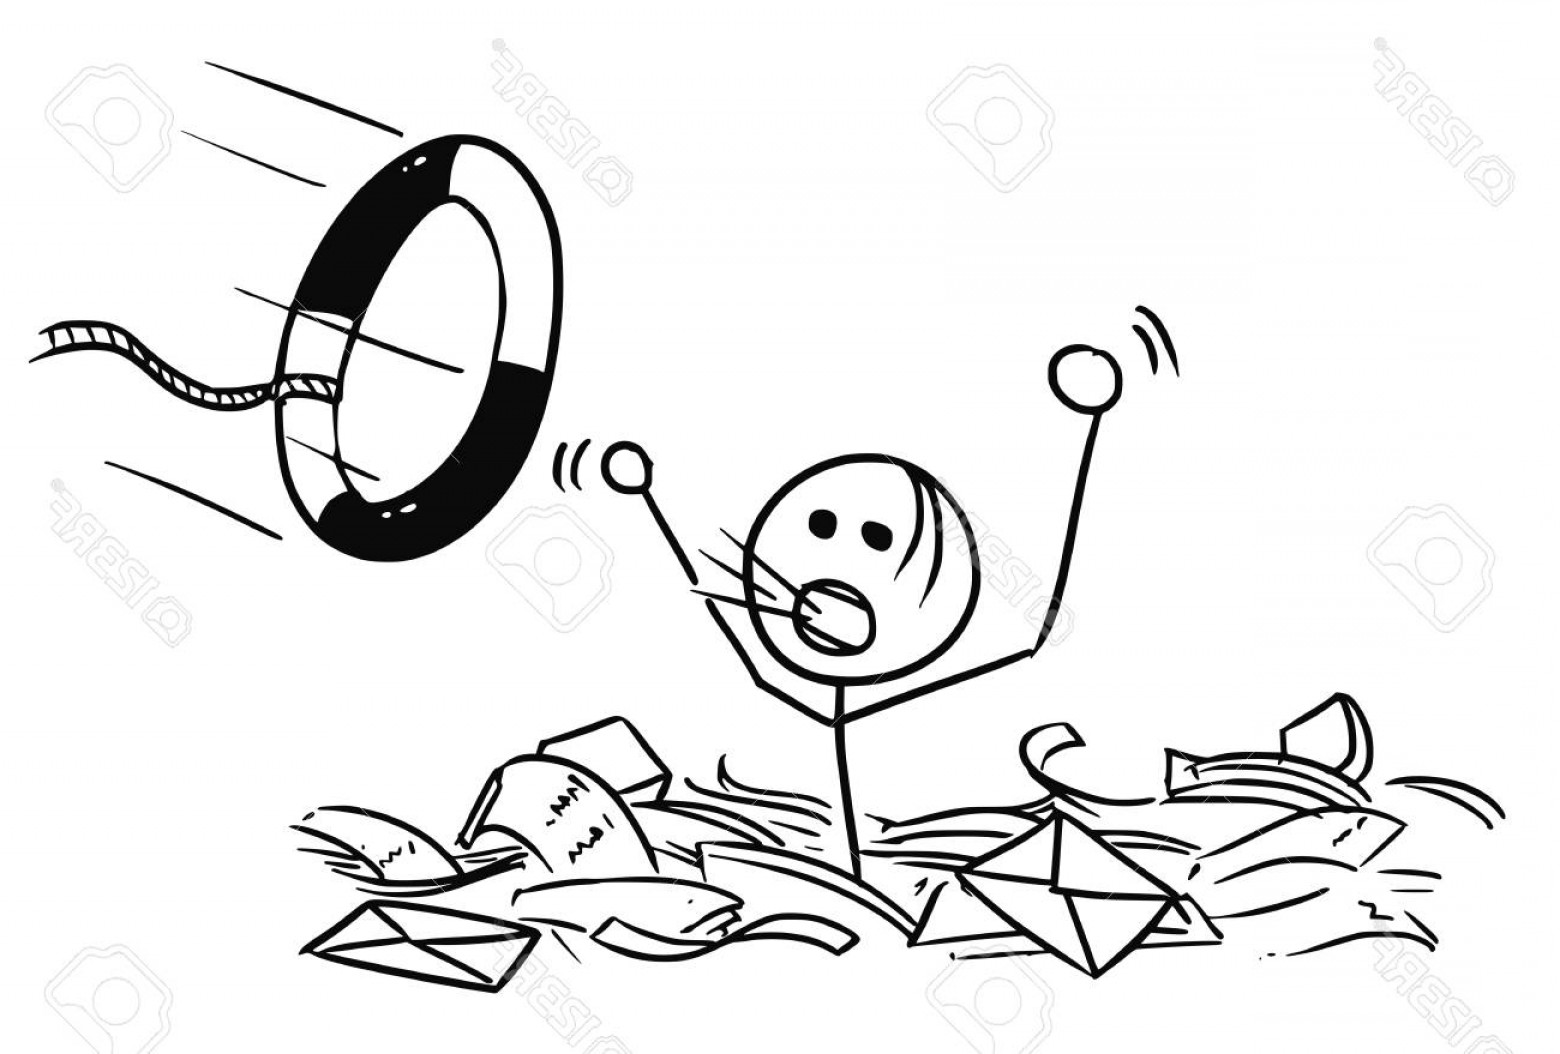 Man Drowning Vector: Photostock Vector Cartoon Vector Doodle Stickman Man Drowning In The Office Paper And Life Buoy Thrown In Paper